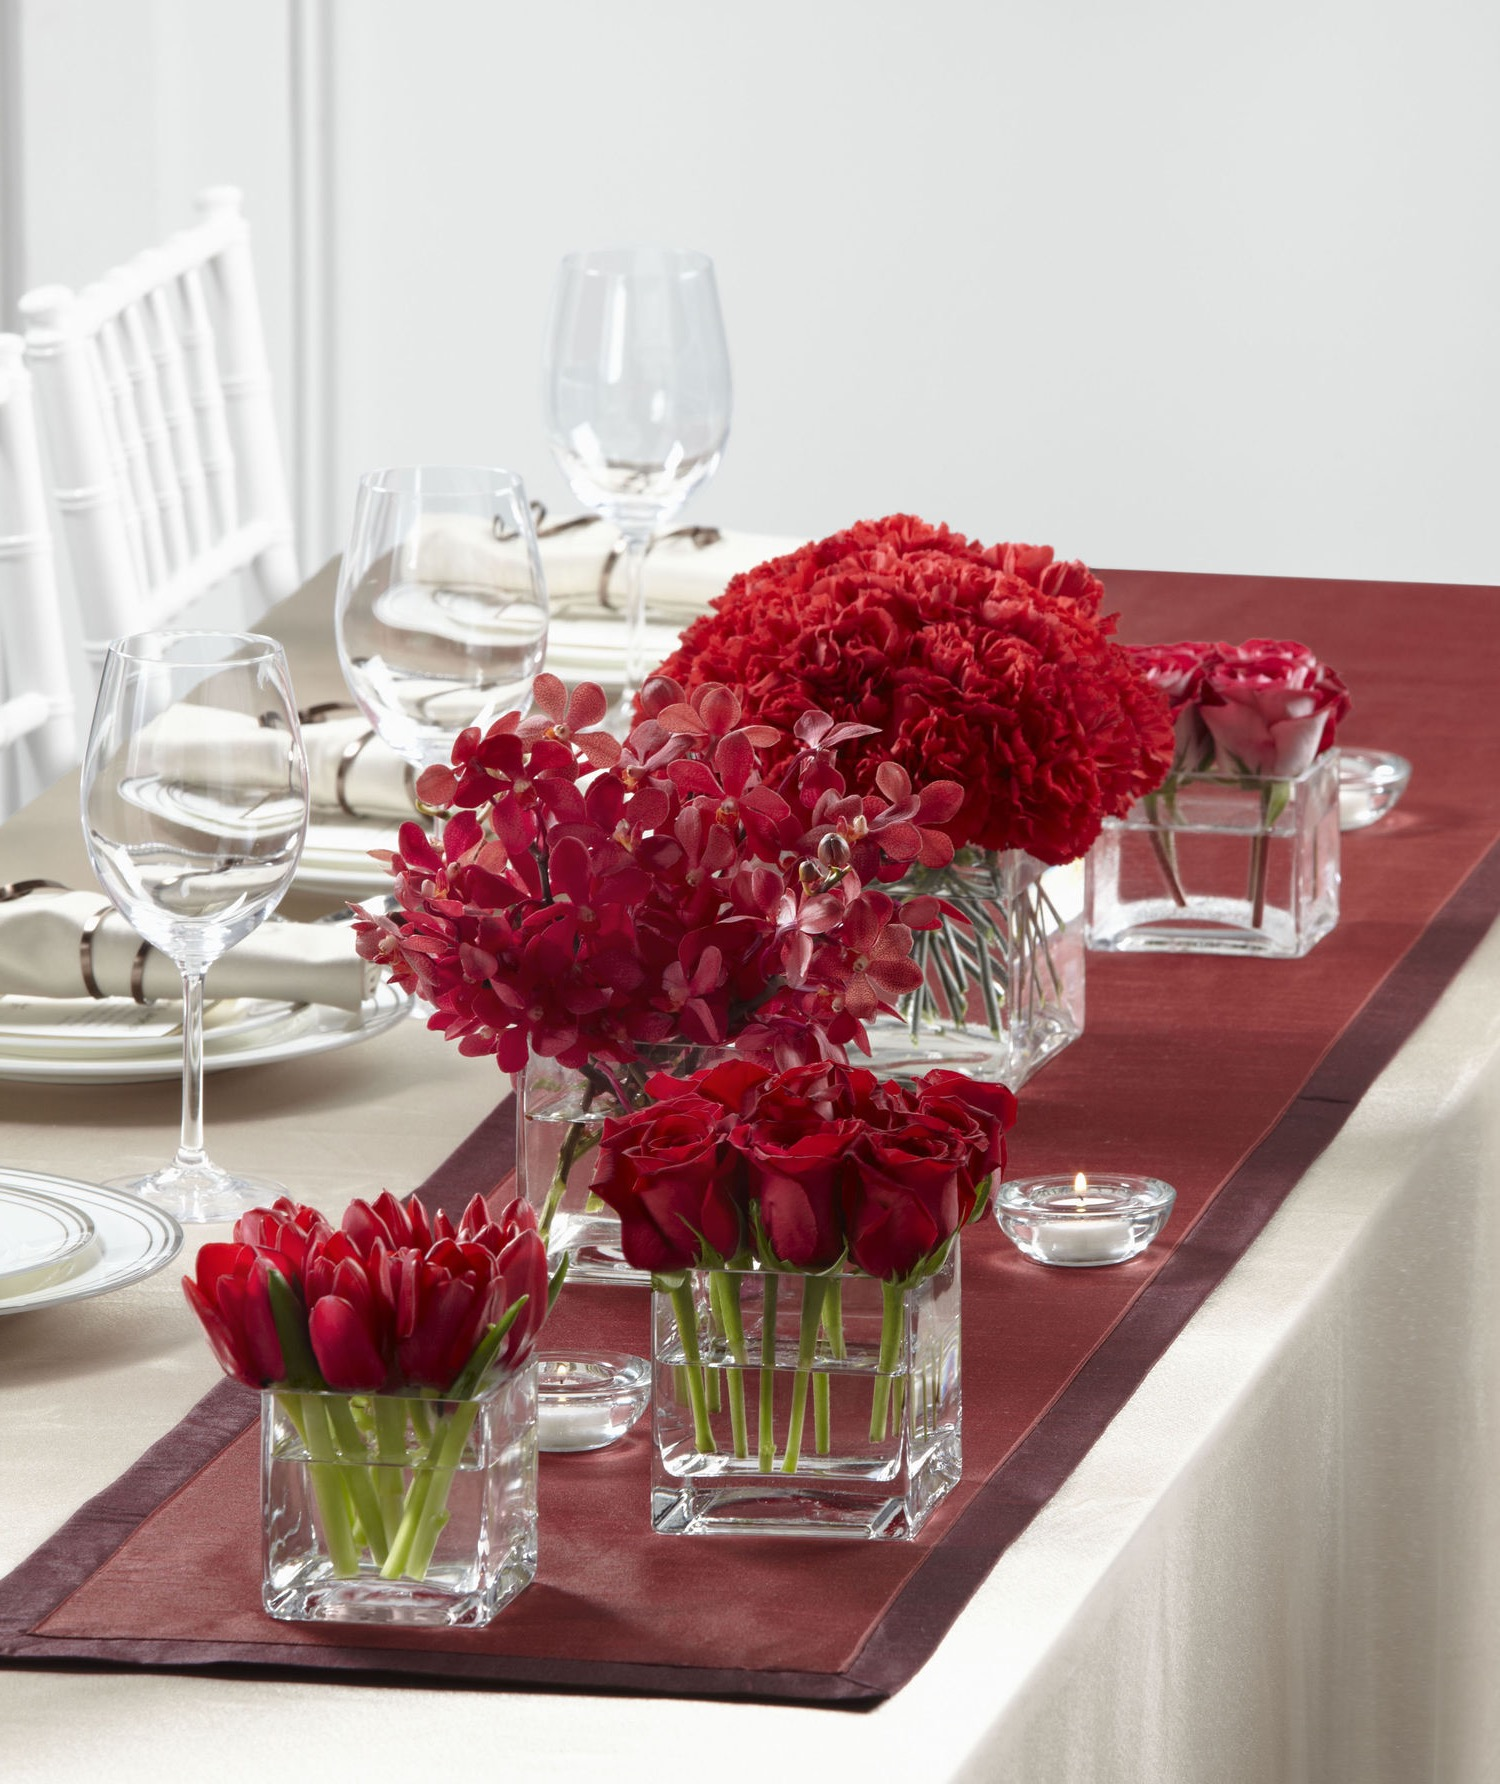 Flowers For Wedding Table Centerpieces: 15 Romantic Red Wedding Centerpieces Ideas #19319